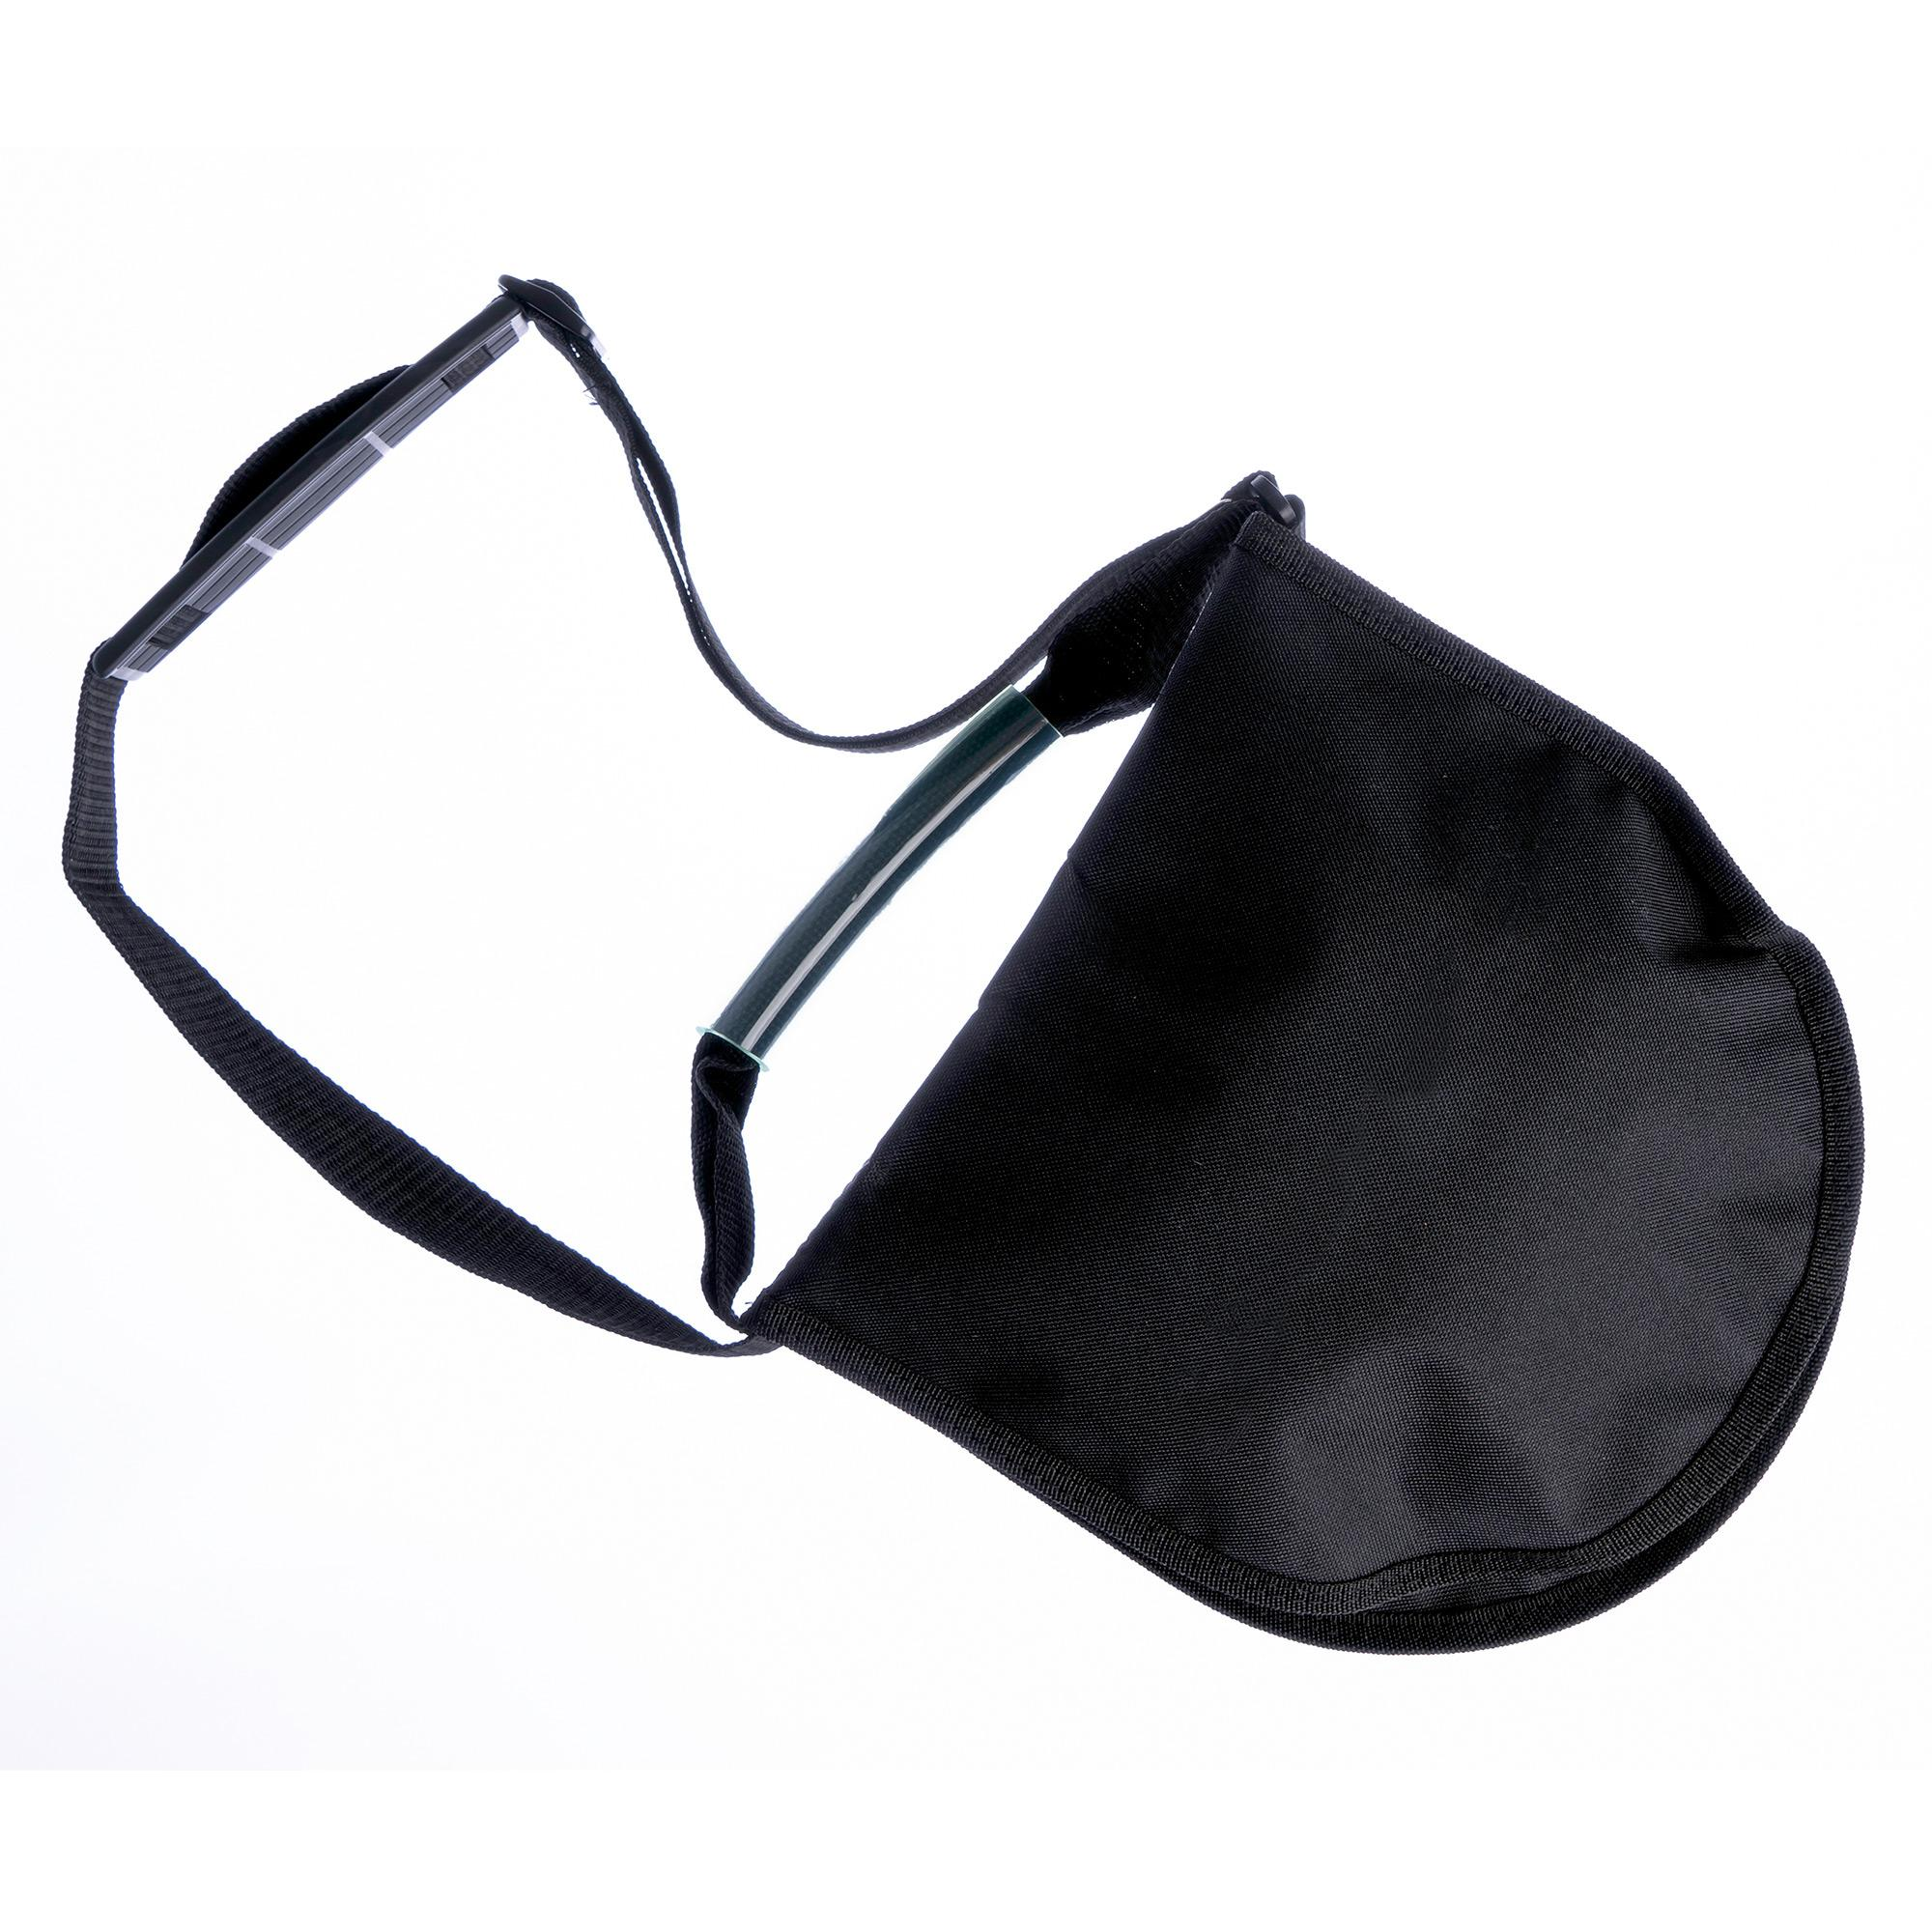 Shot & Discus Vinyl Carry Bag with Strap